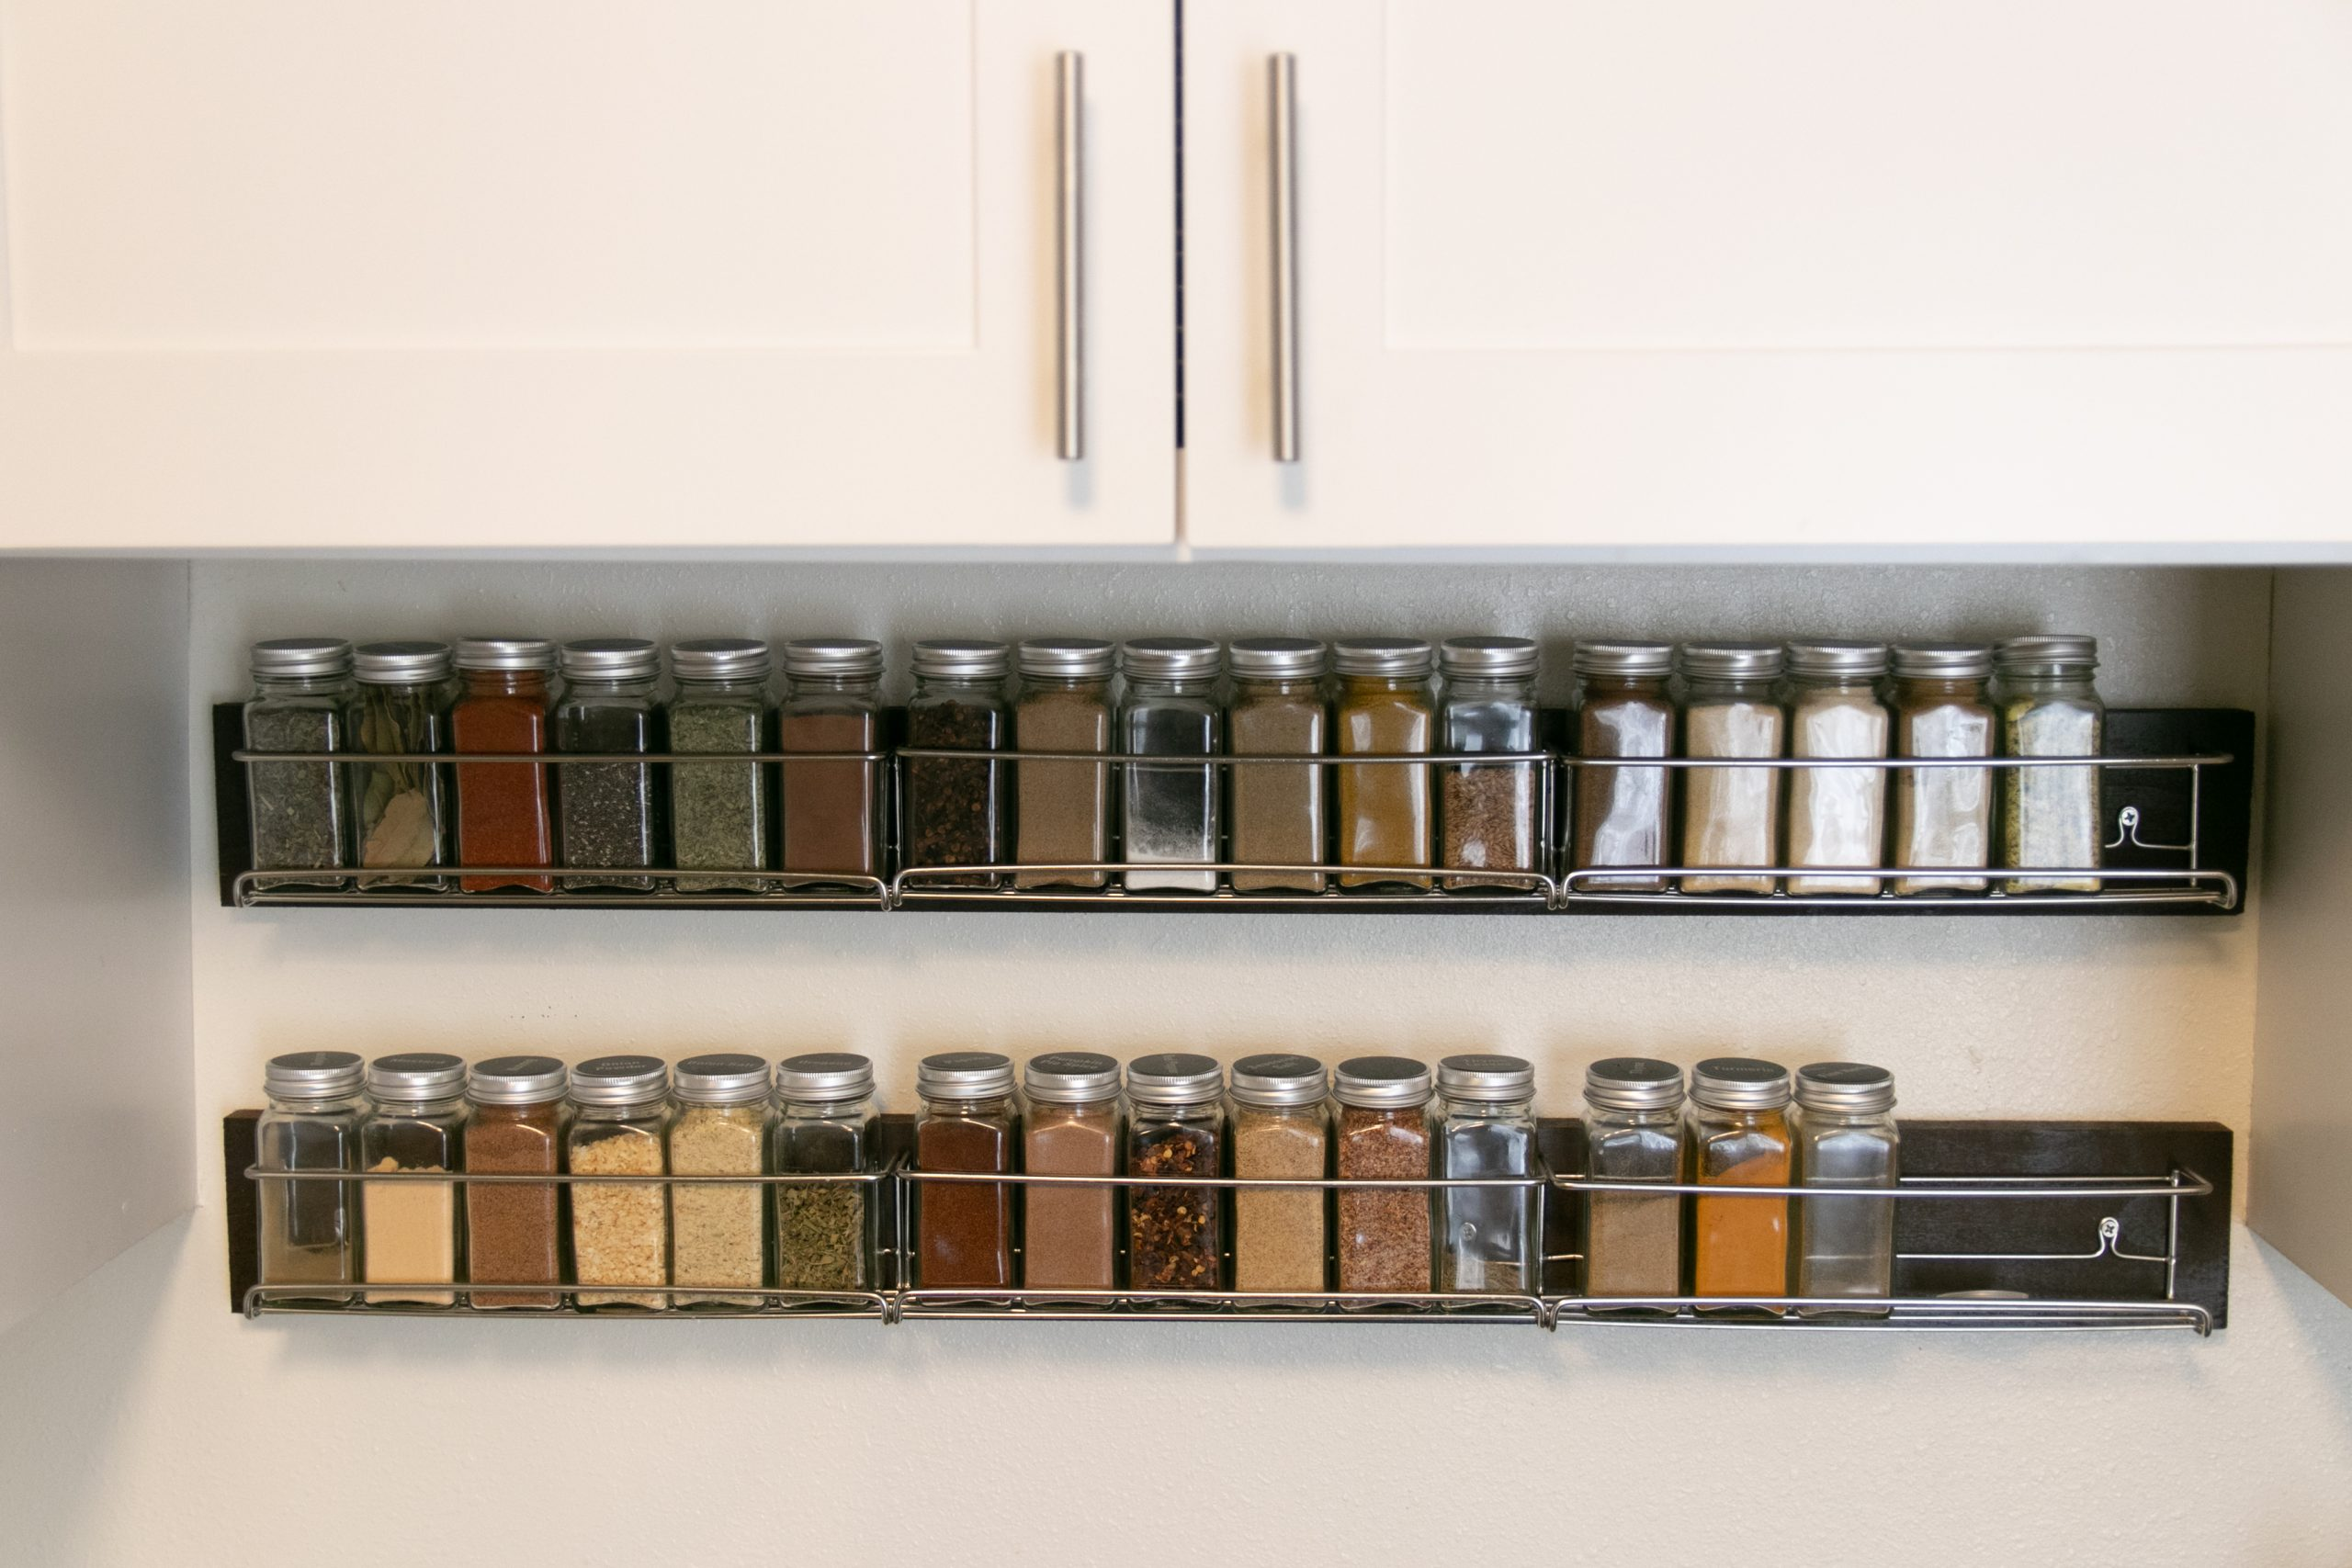 Small Jars Of Spices On Rack Organizer